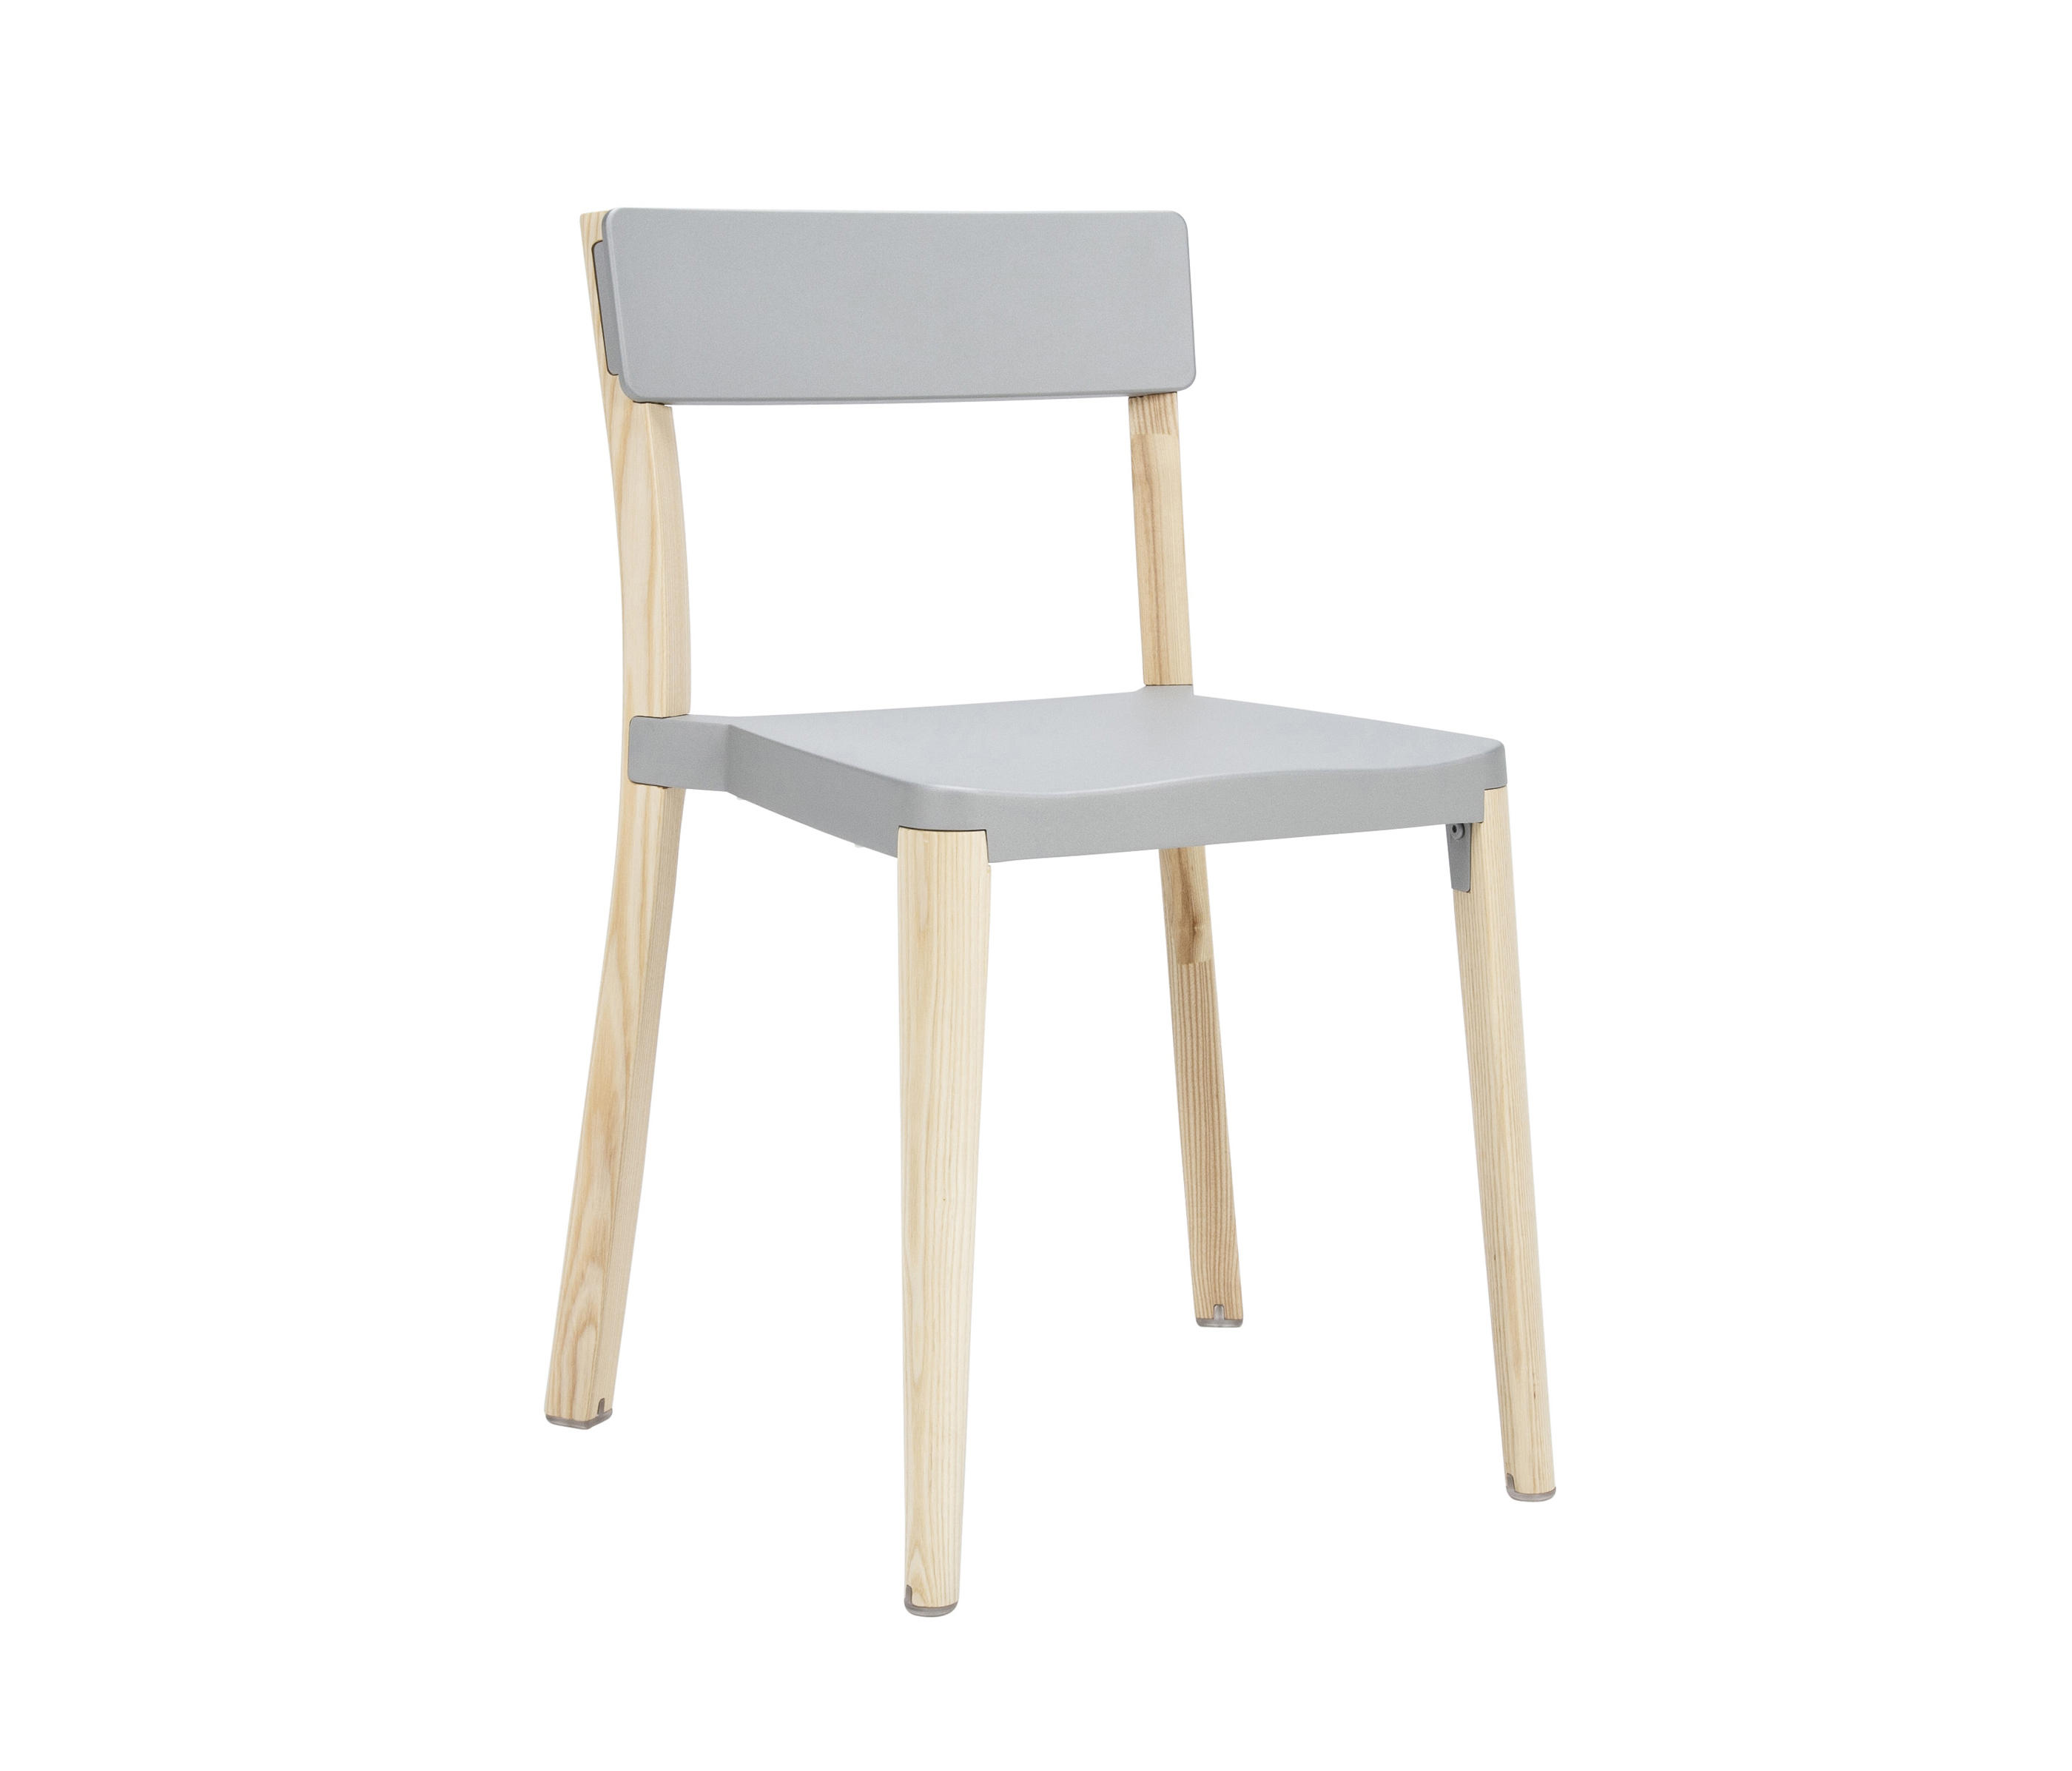 Superieur Lancaster Stacking Chair By Emeco | Chairs